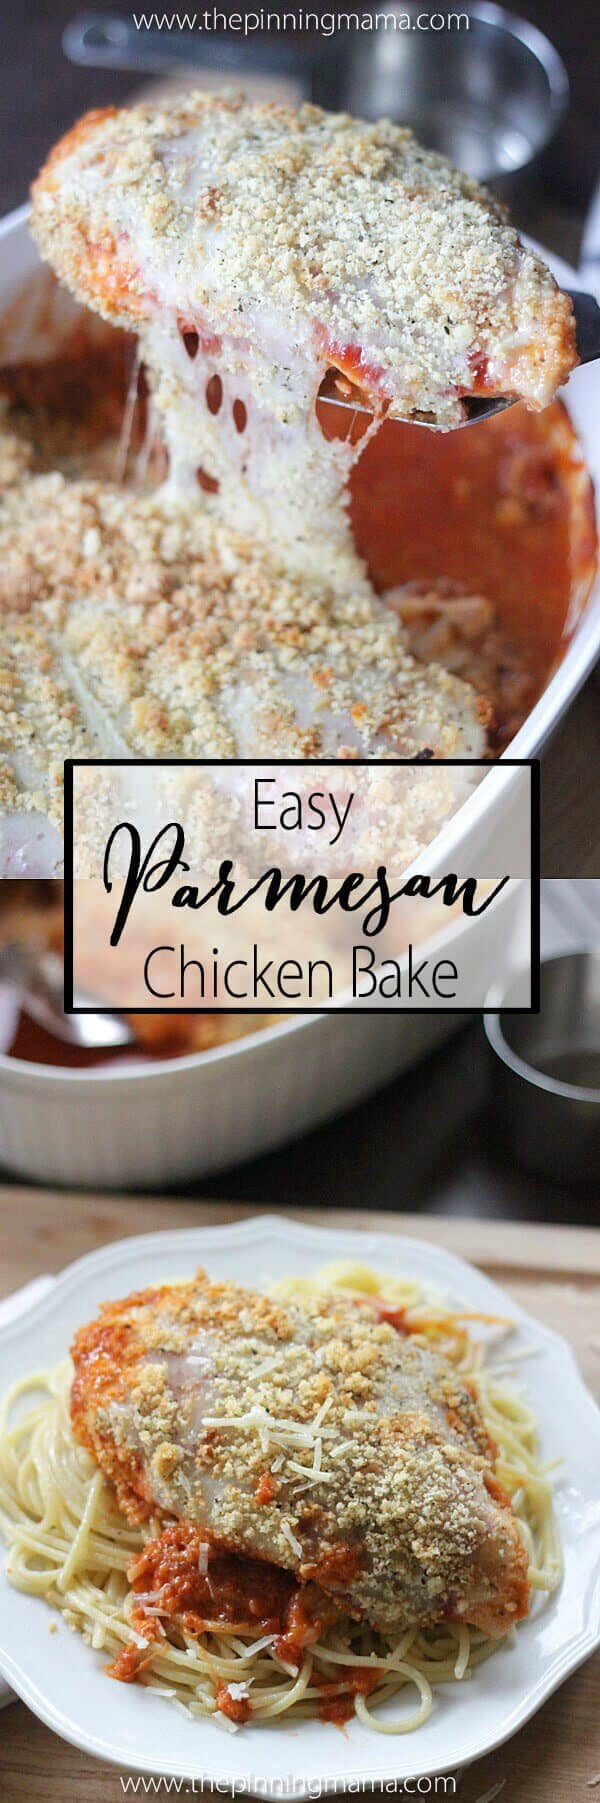 Easy Chicken Parmesan Bake Recipe